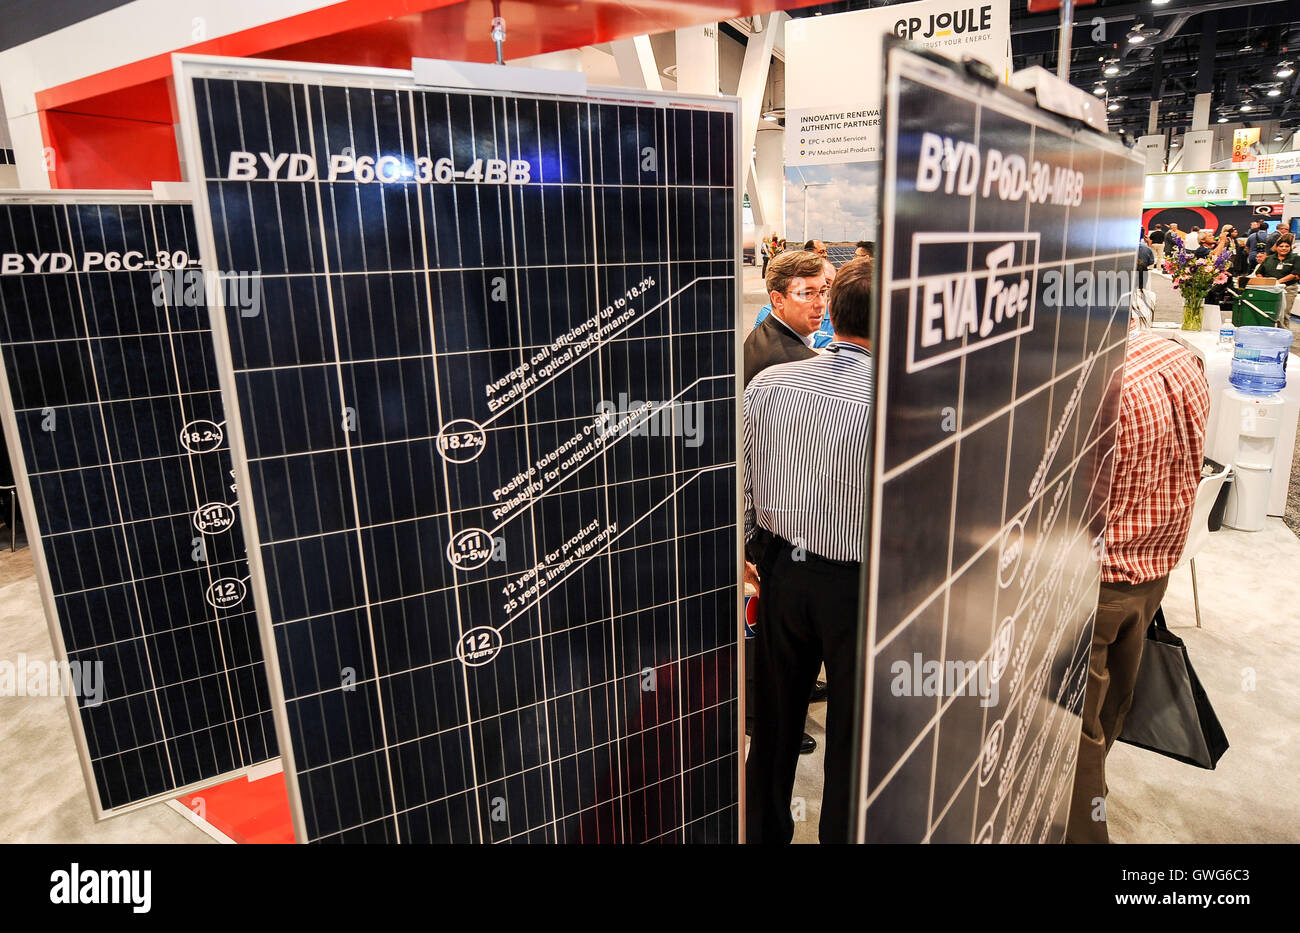 (160914) -- LAS VEGAS, Sept. 14, 2016 (Xinhua) -- Chinese carmaker BYD exhibits its latest solar products at the - Stock Image